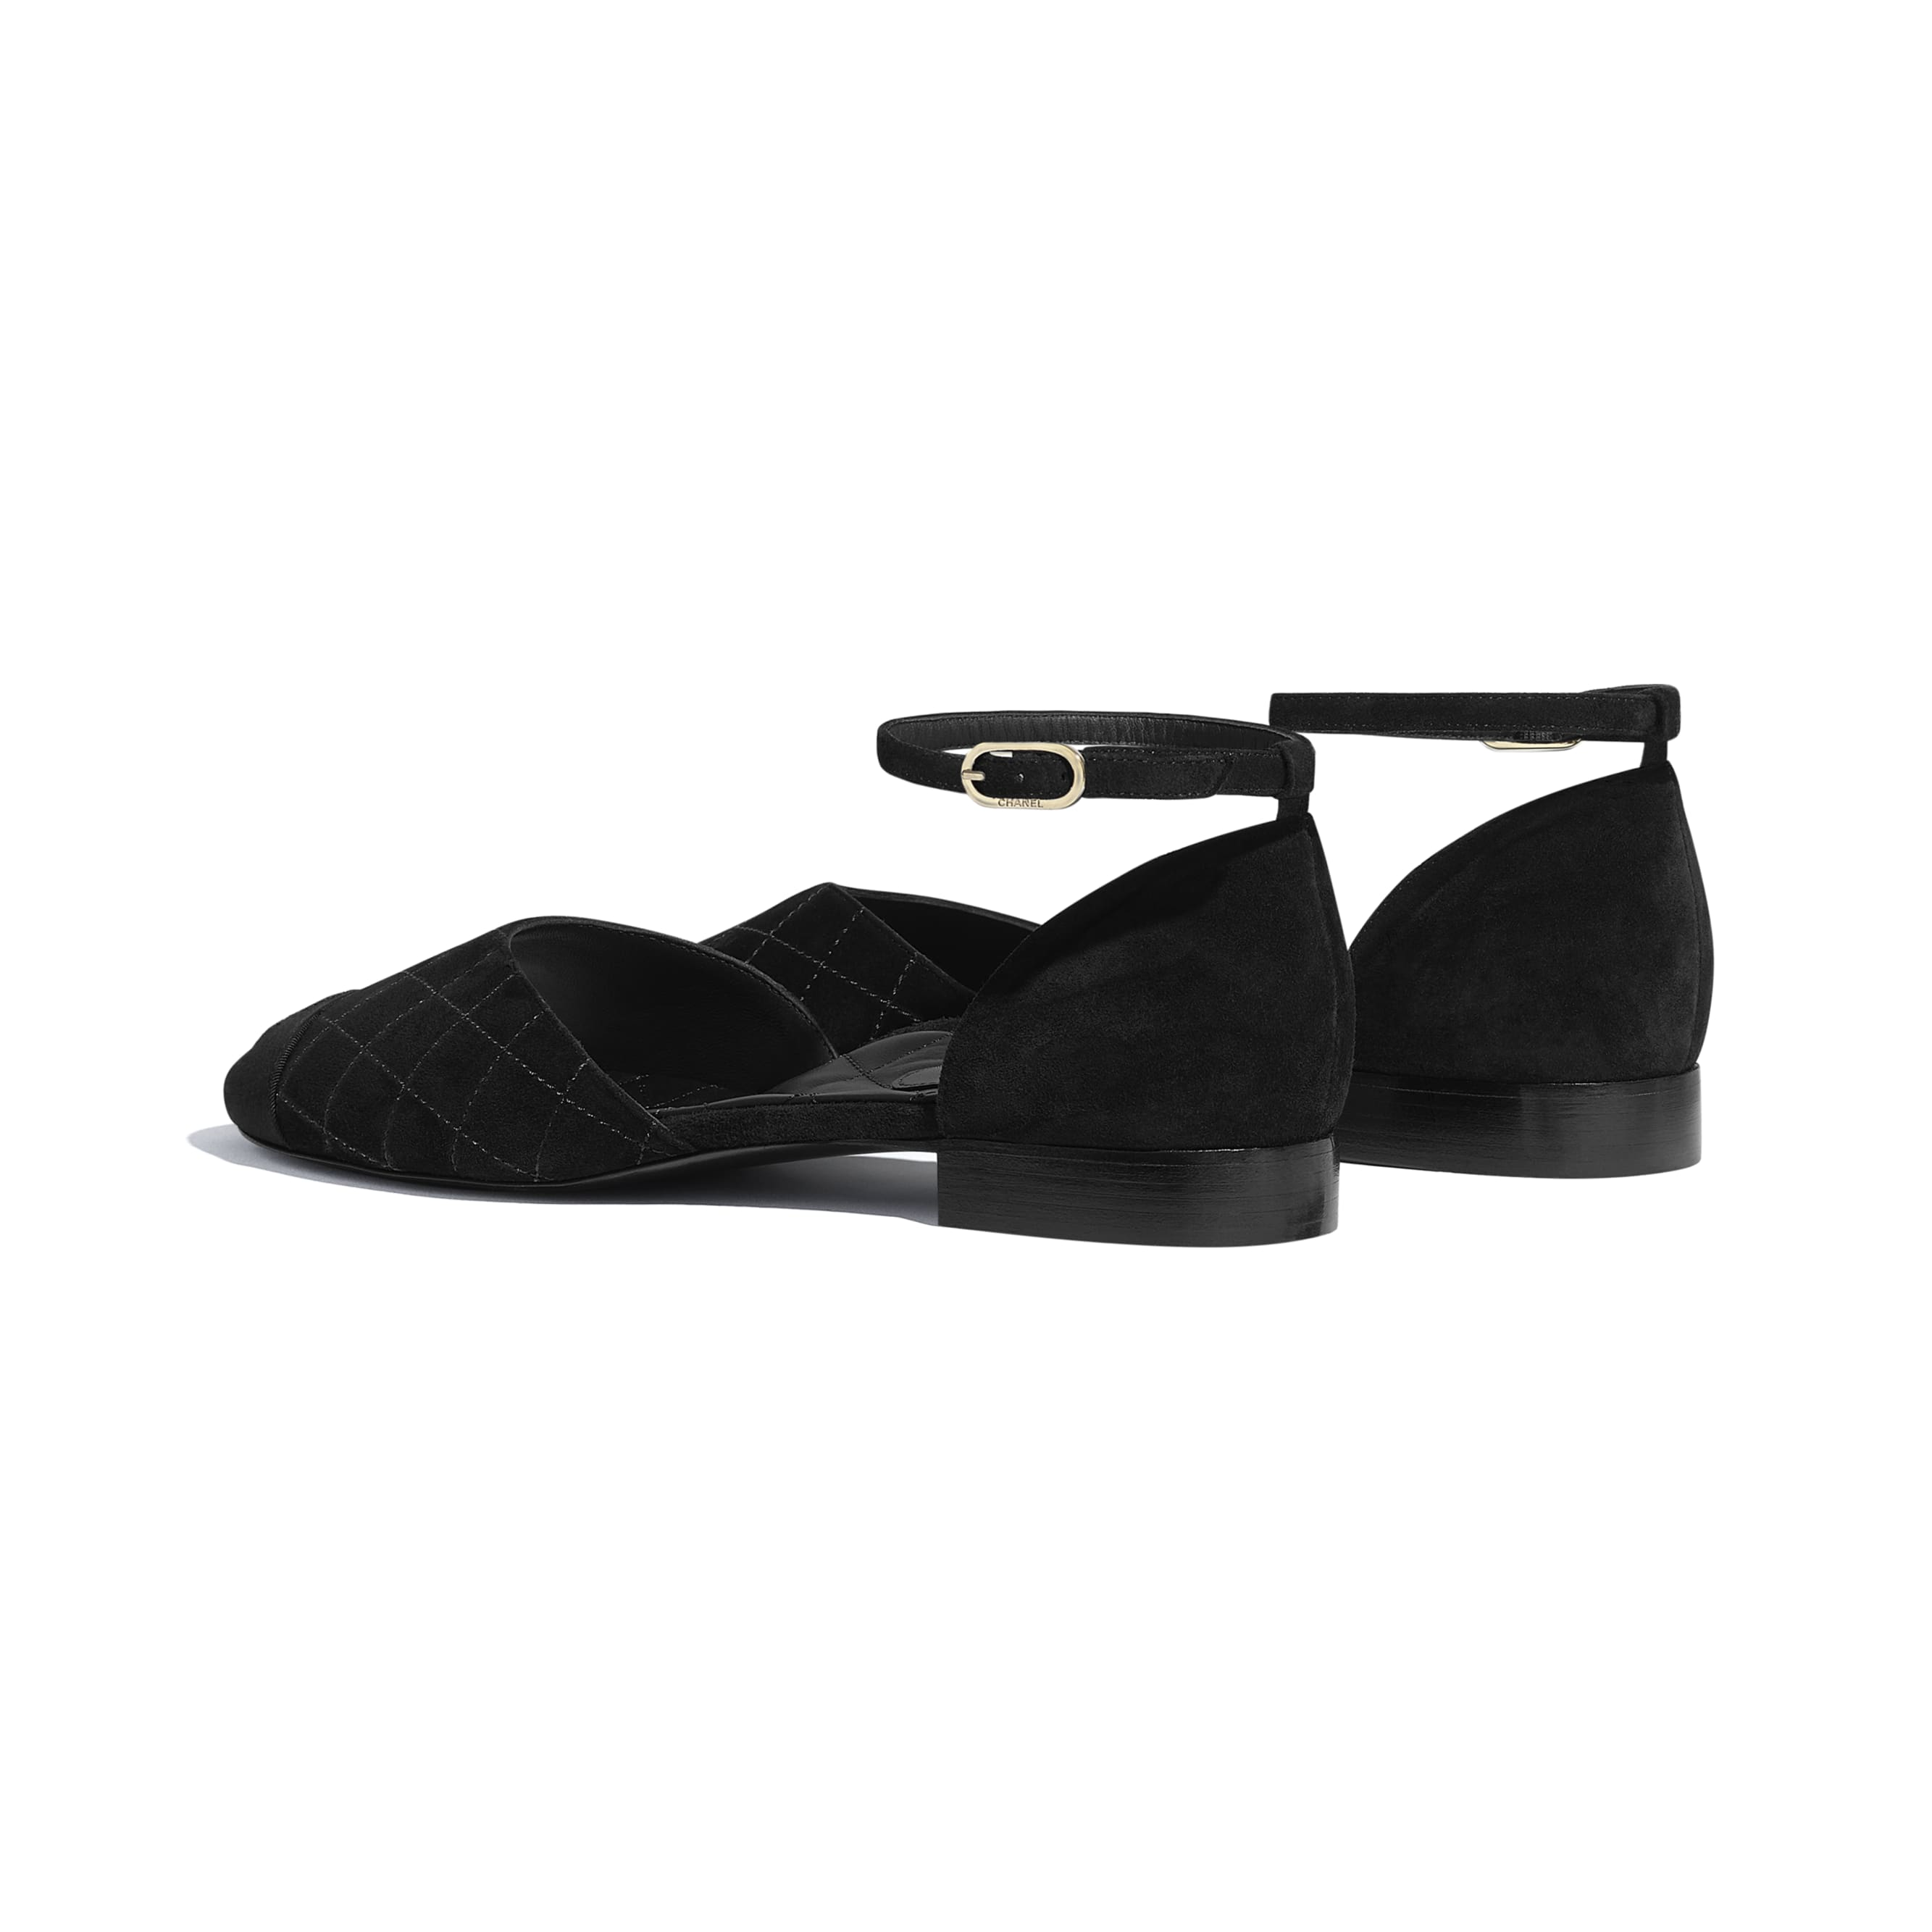 Mary Janes  - Black - Suede Calfskin & Grosgrain - CHANEL - Other view - see standard sized version